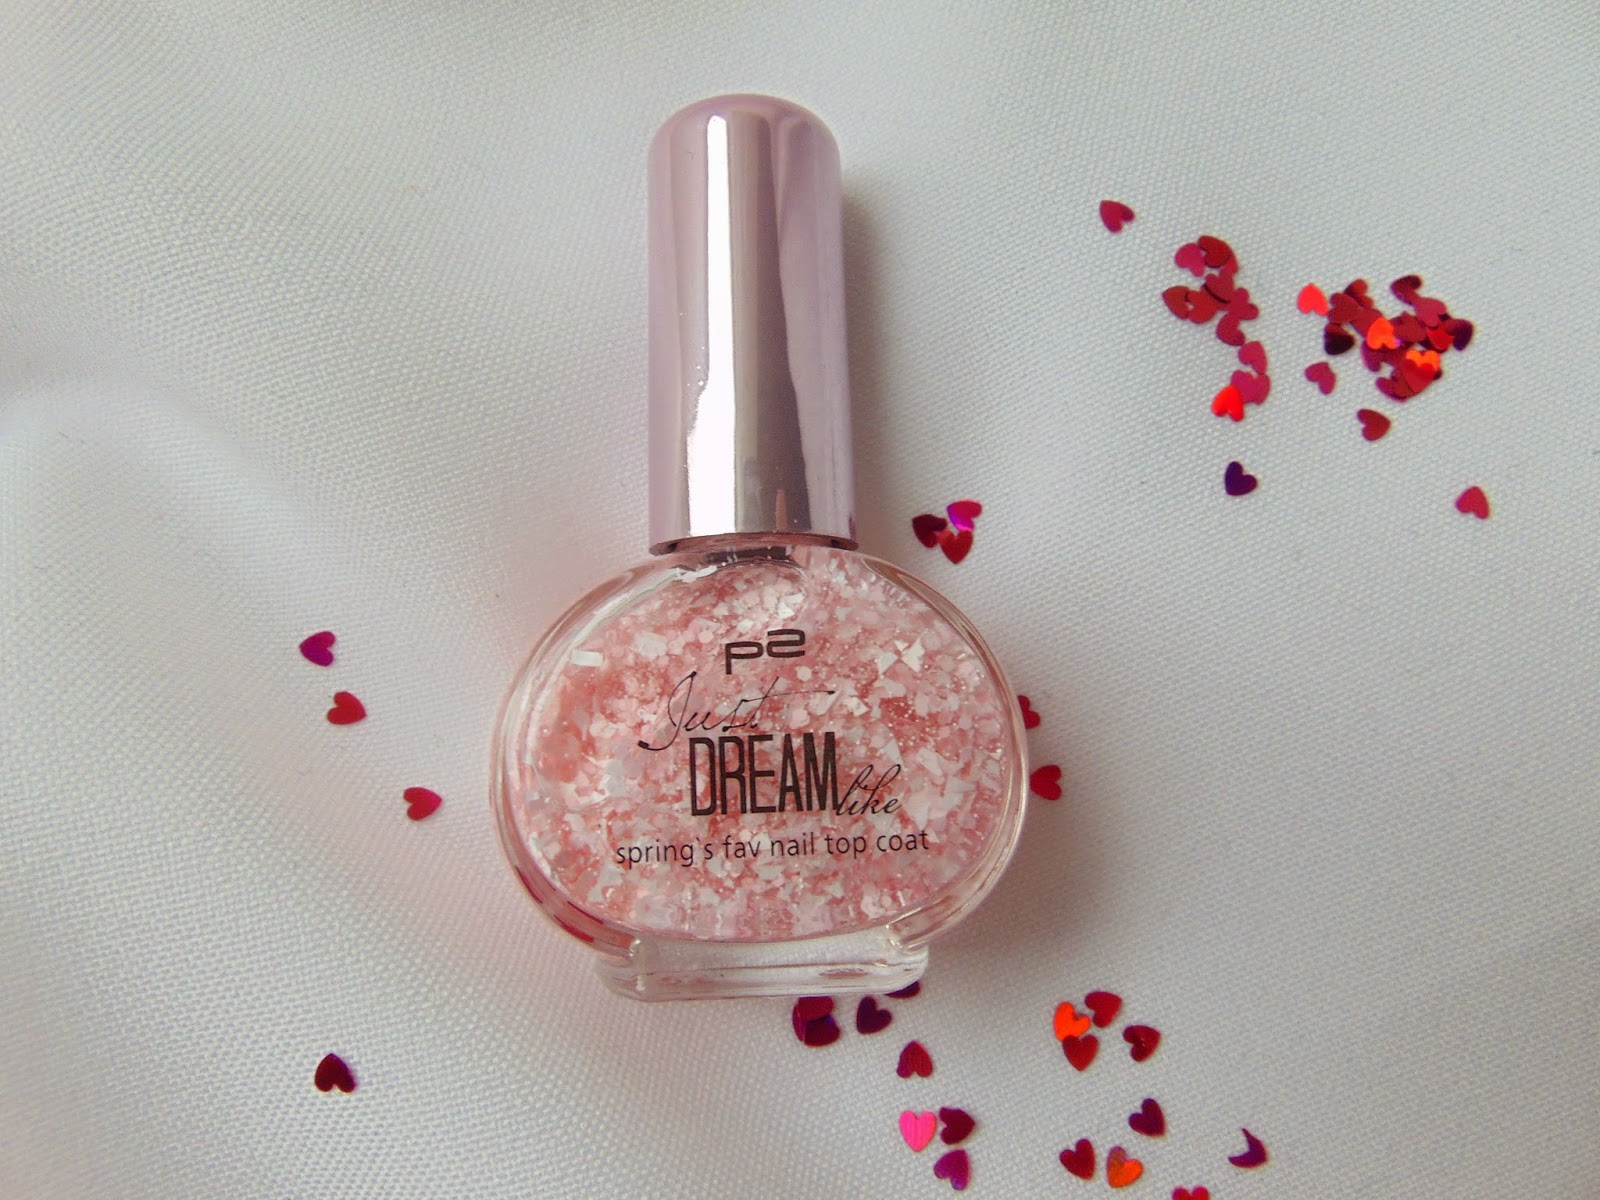 p2 Limited Edition: Just dream like - spring's fav nail top coat - Peach delight dots - www.annitschkasblog.de